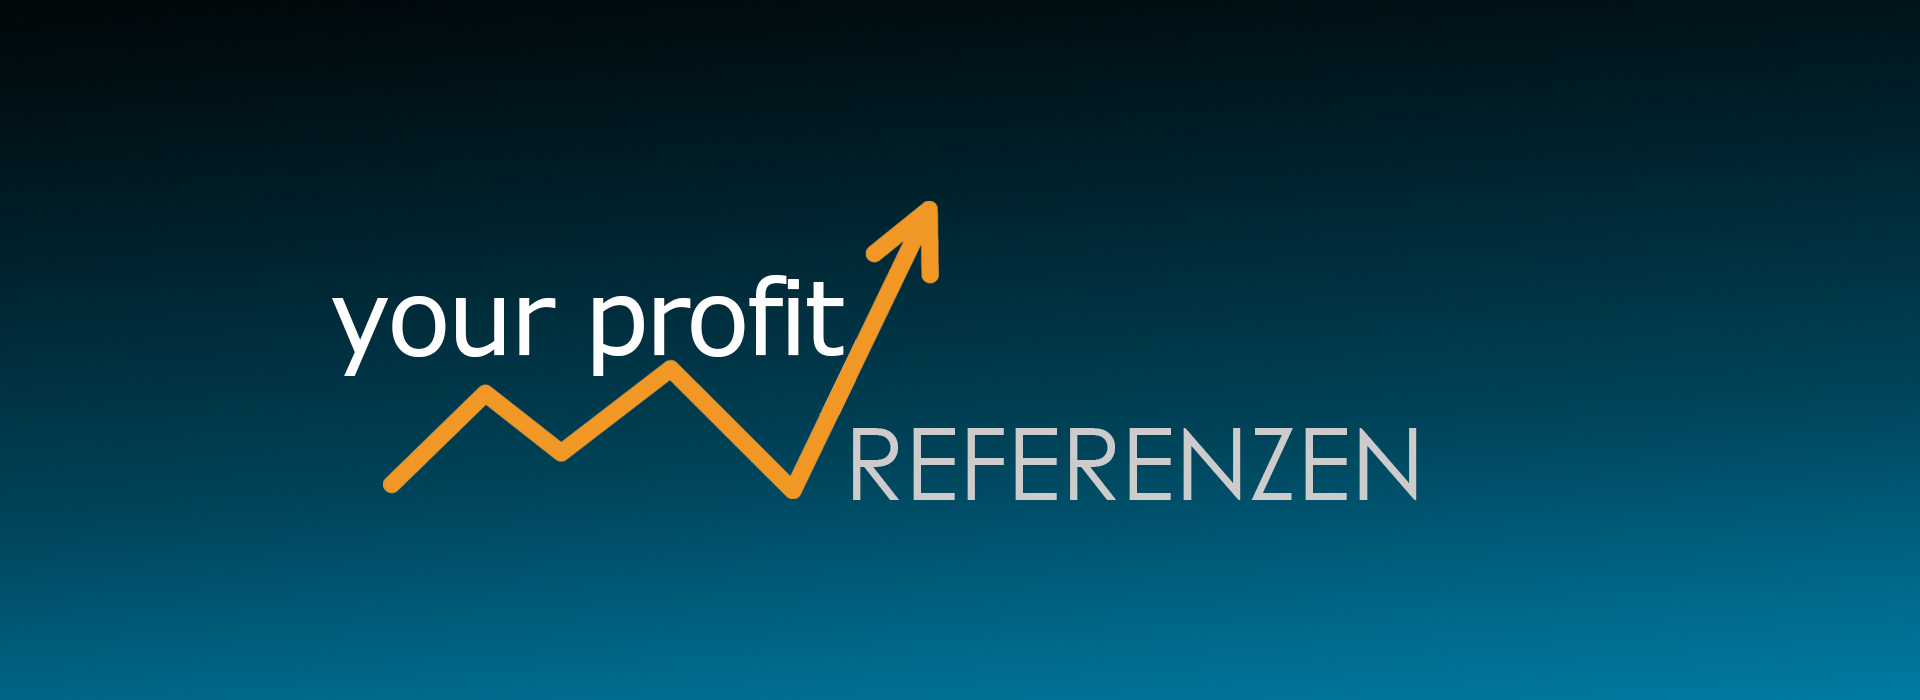 Your Profit Referenzen